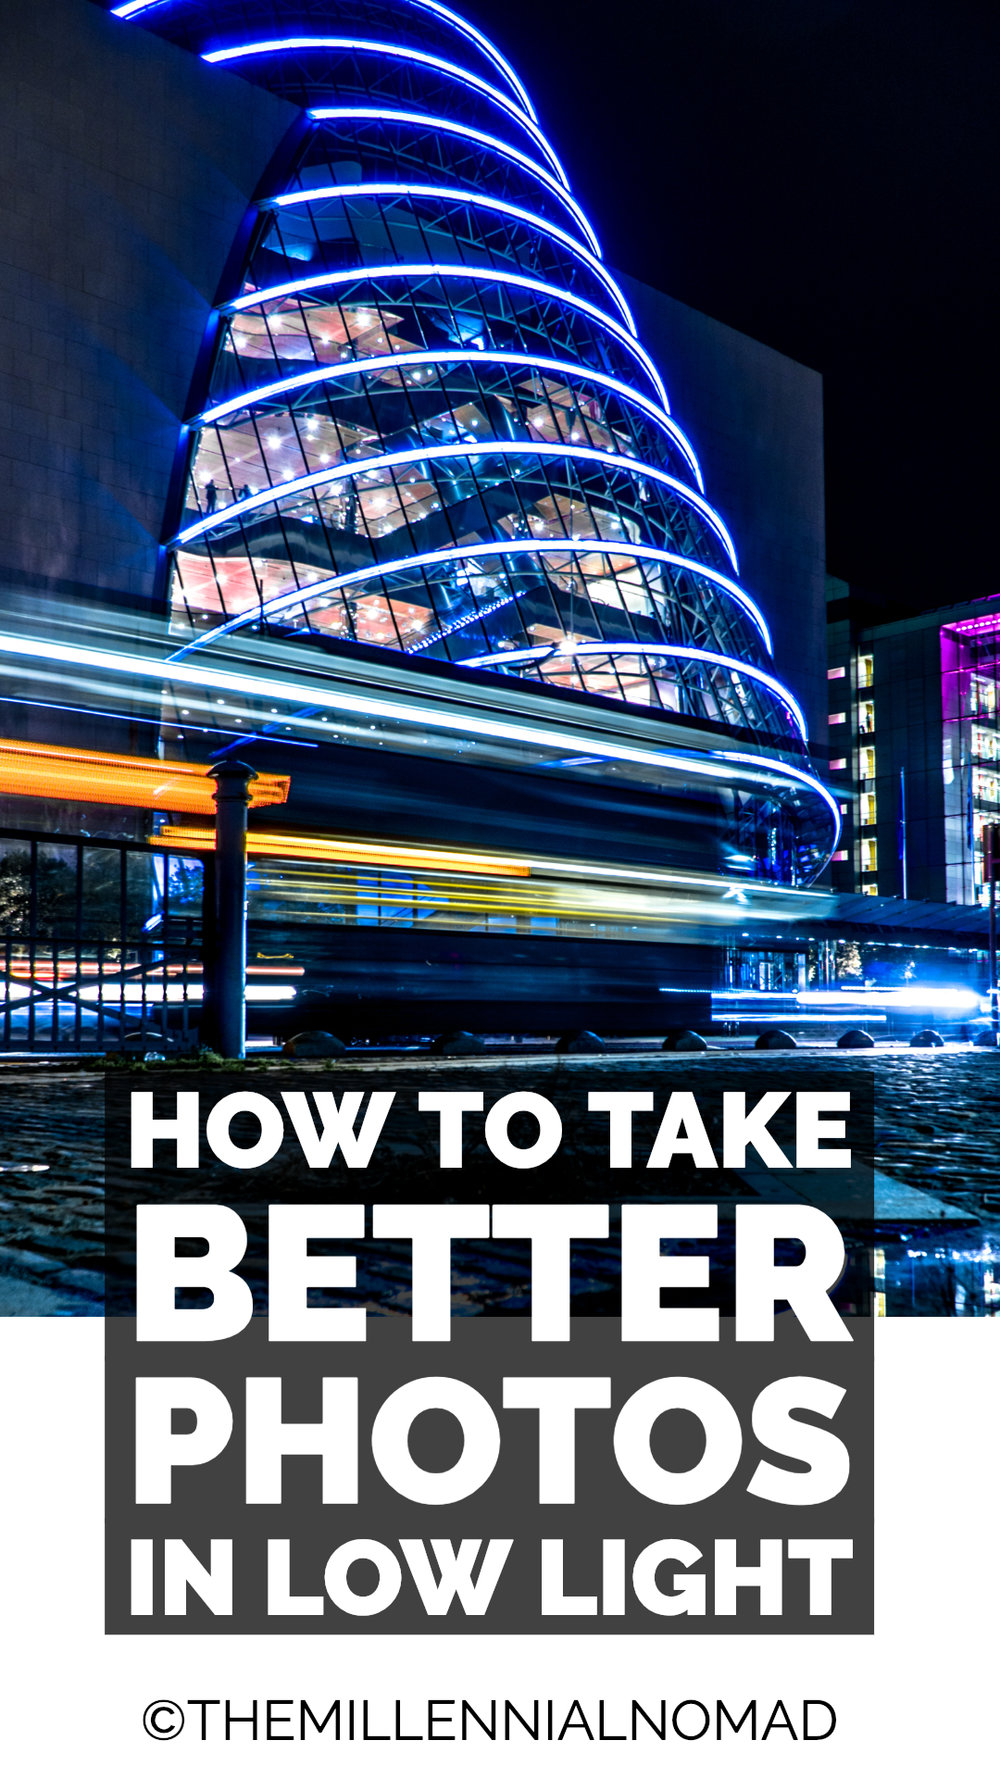 When I started photography I had no idea of how to take photos in low light conditions . For me taking photos at night meant using a flash…yes, I know… rookie mistake. But I had to go through these learning steps  in order to improve my skills. Discover how to take better photos in low light with these 7 tips